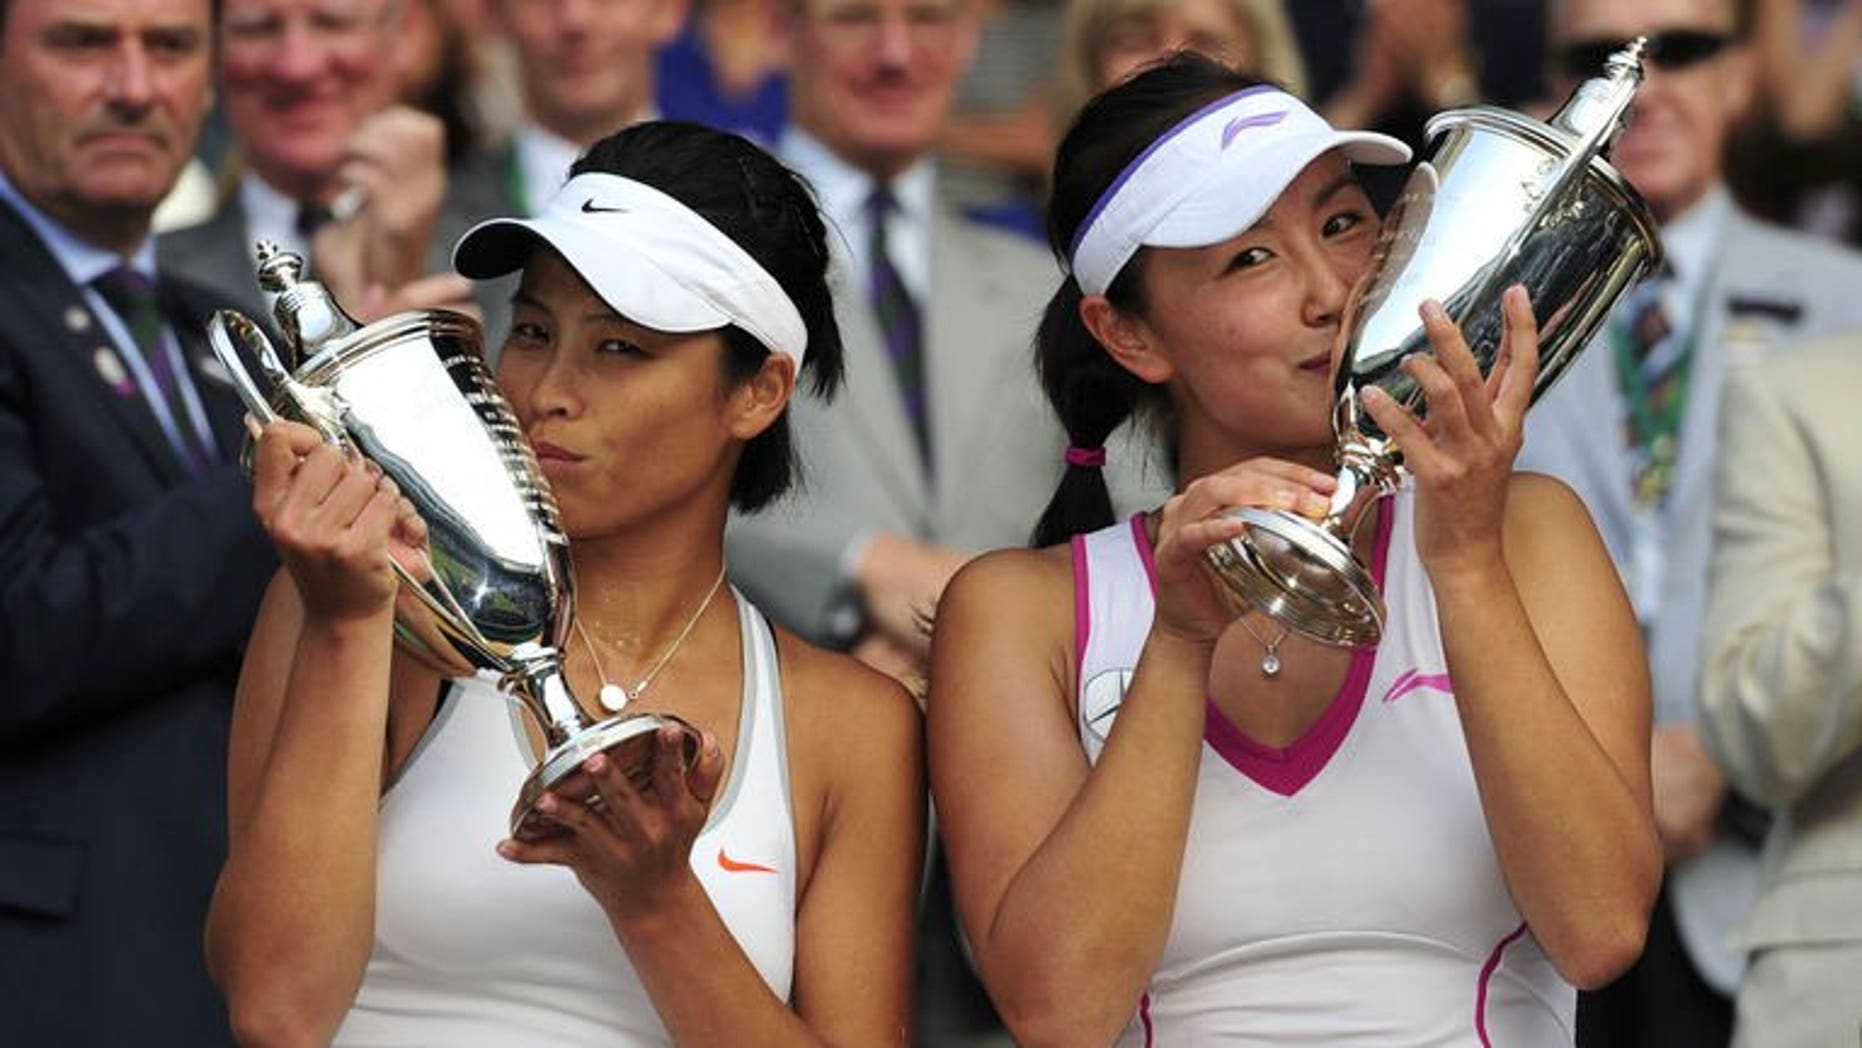 China's Peng Shuai (R) and Taiwan's Hsieh Su-Wei pose with the winners trophies after beating Australians Ashleigh Barty and Casey Dellacqua in the women's doubles final at the All England Club in Wimbledon, southwest London, on July 6, 2013. Peng and Hsieh won 7-6, 6-1.